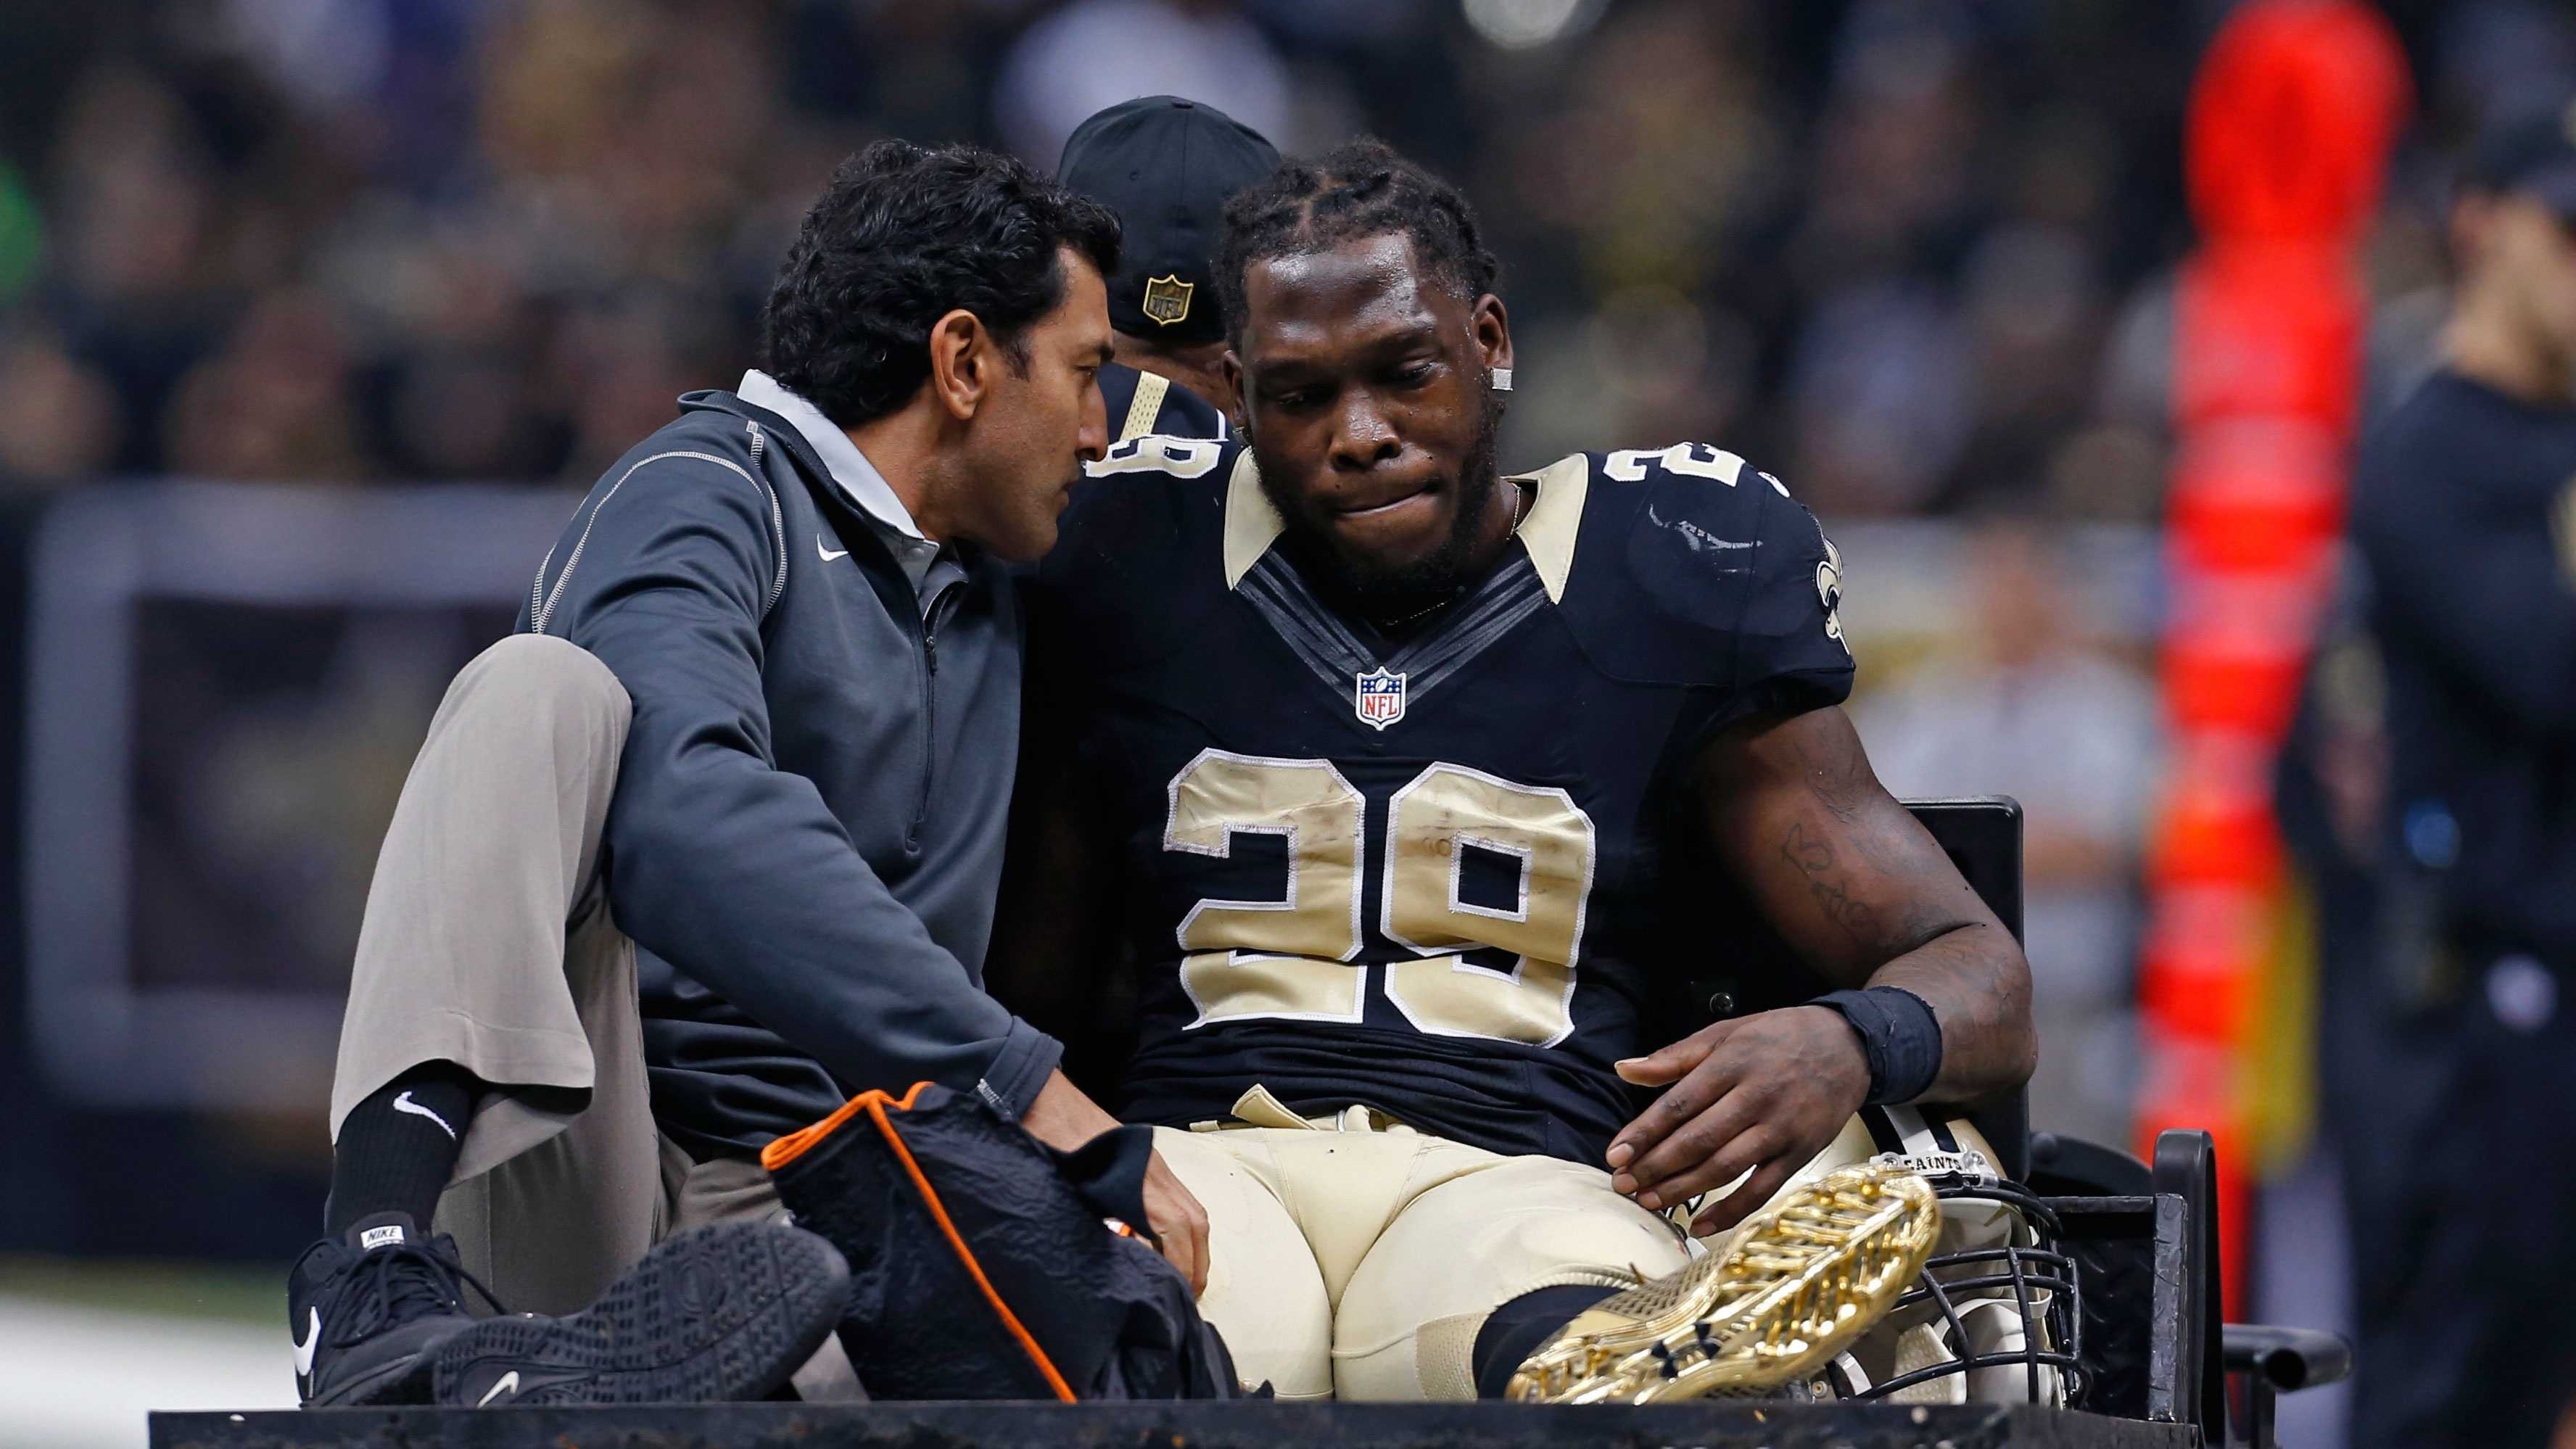 New Orleans Saints running back Khiry Robinson (29) is carted off the field after being injured in the first half of an NFL football game against the New York Giants in New Orleans, Sunday, Nov. 1, 2015.